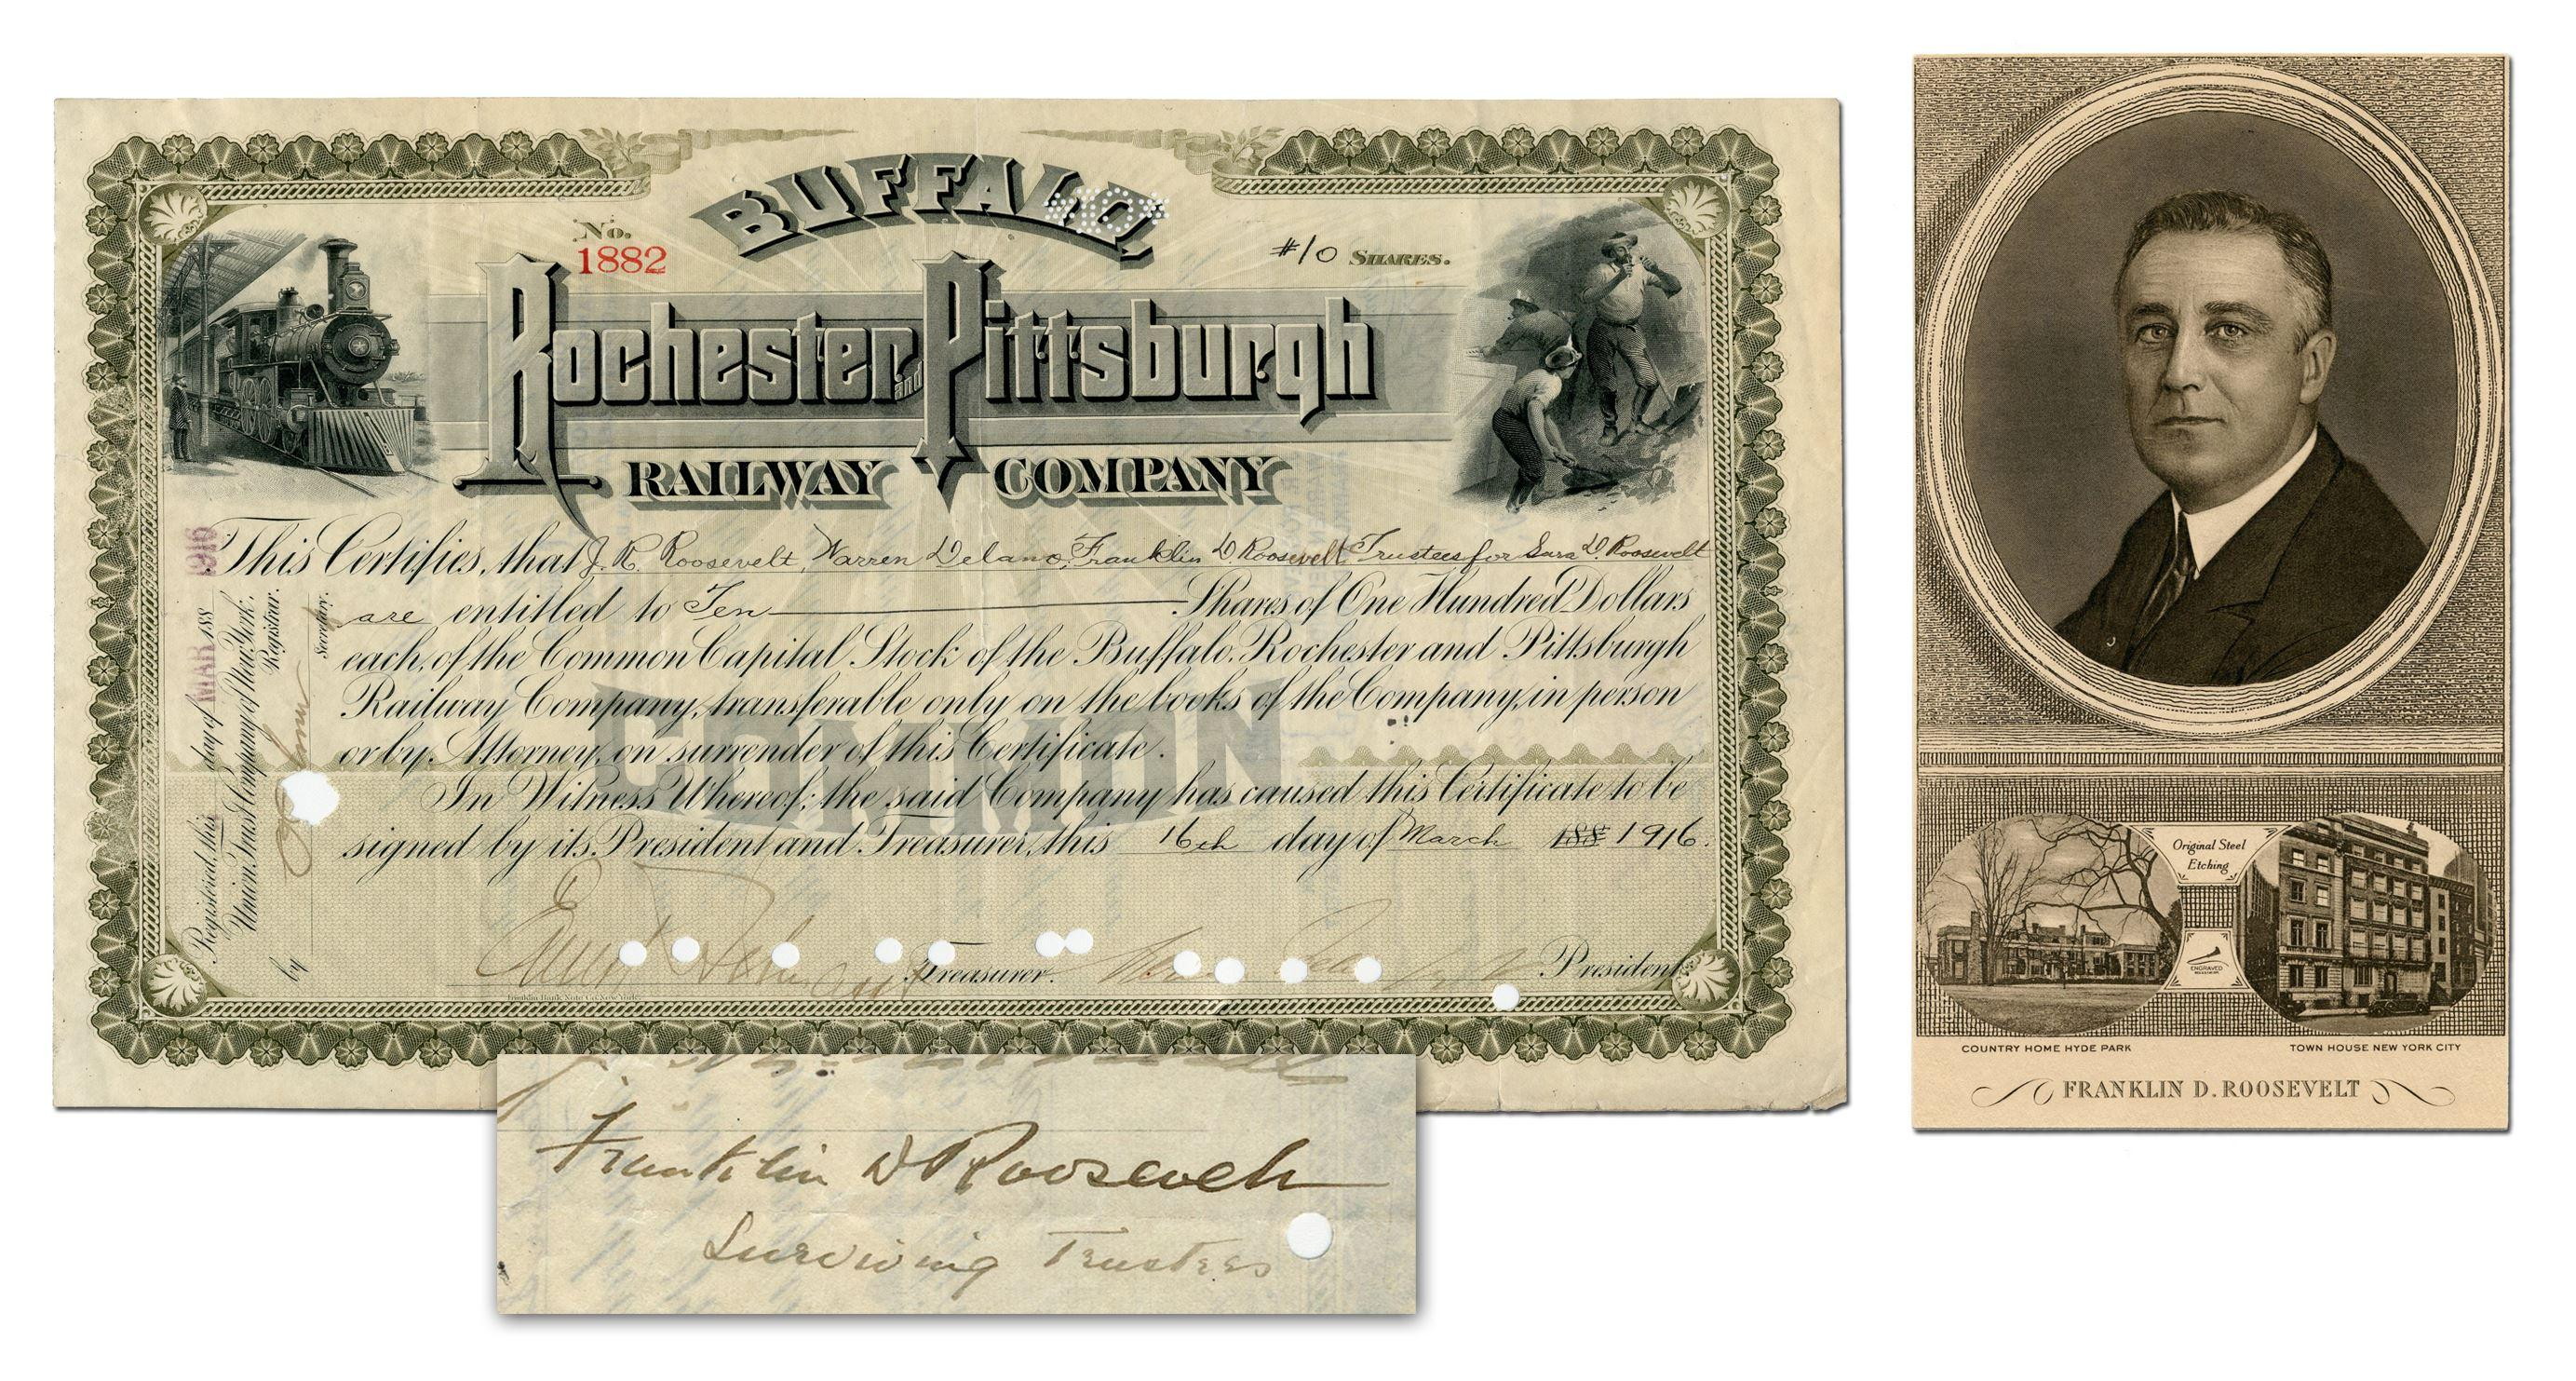 Franklin D. Roosevelt Signs Rare Stock Certificate as Trustee of his Mother's Estate